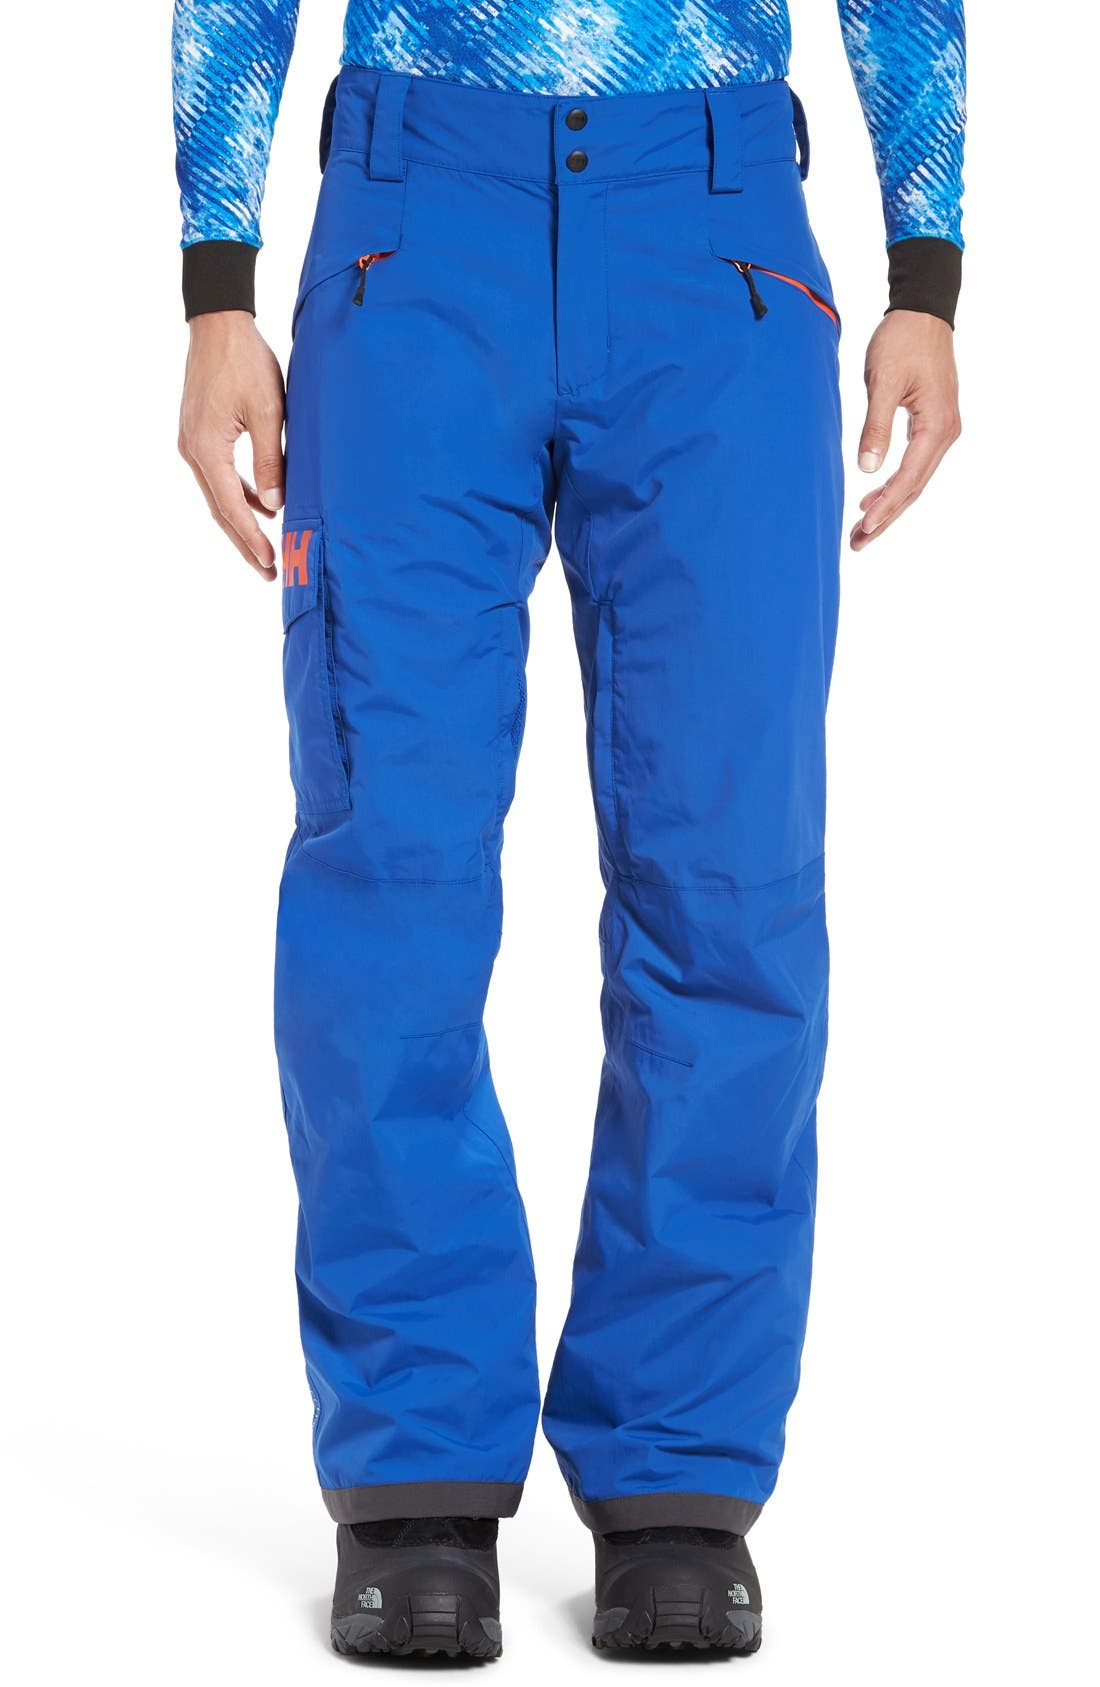 HELLY HANSEN 'Sogn' Waterproof PrimaLoft® Cargo Snow Pants